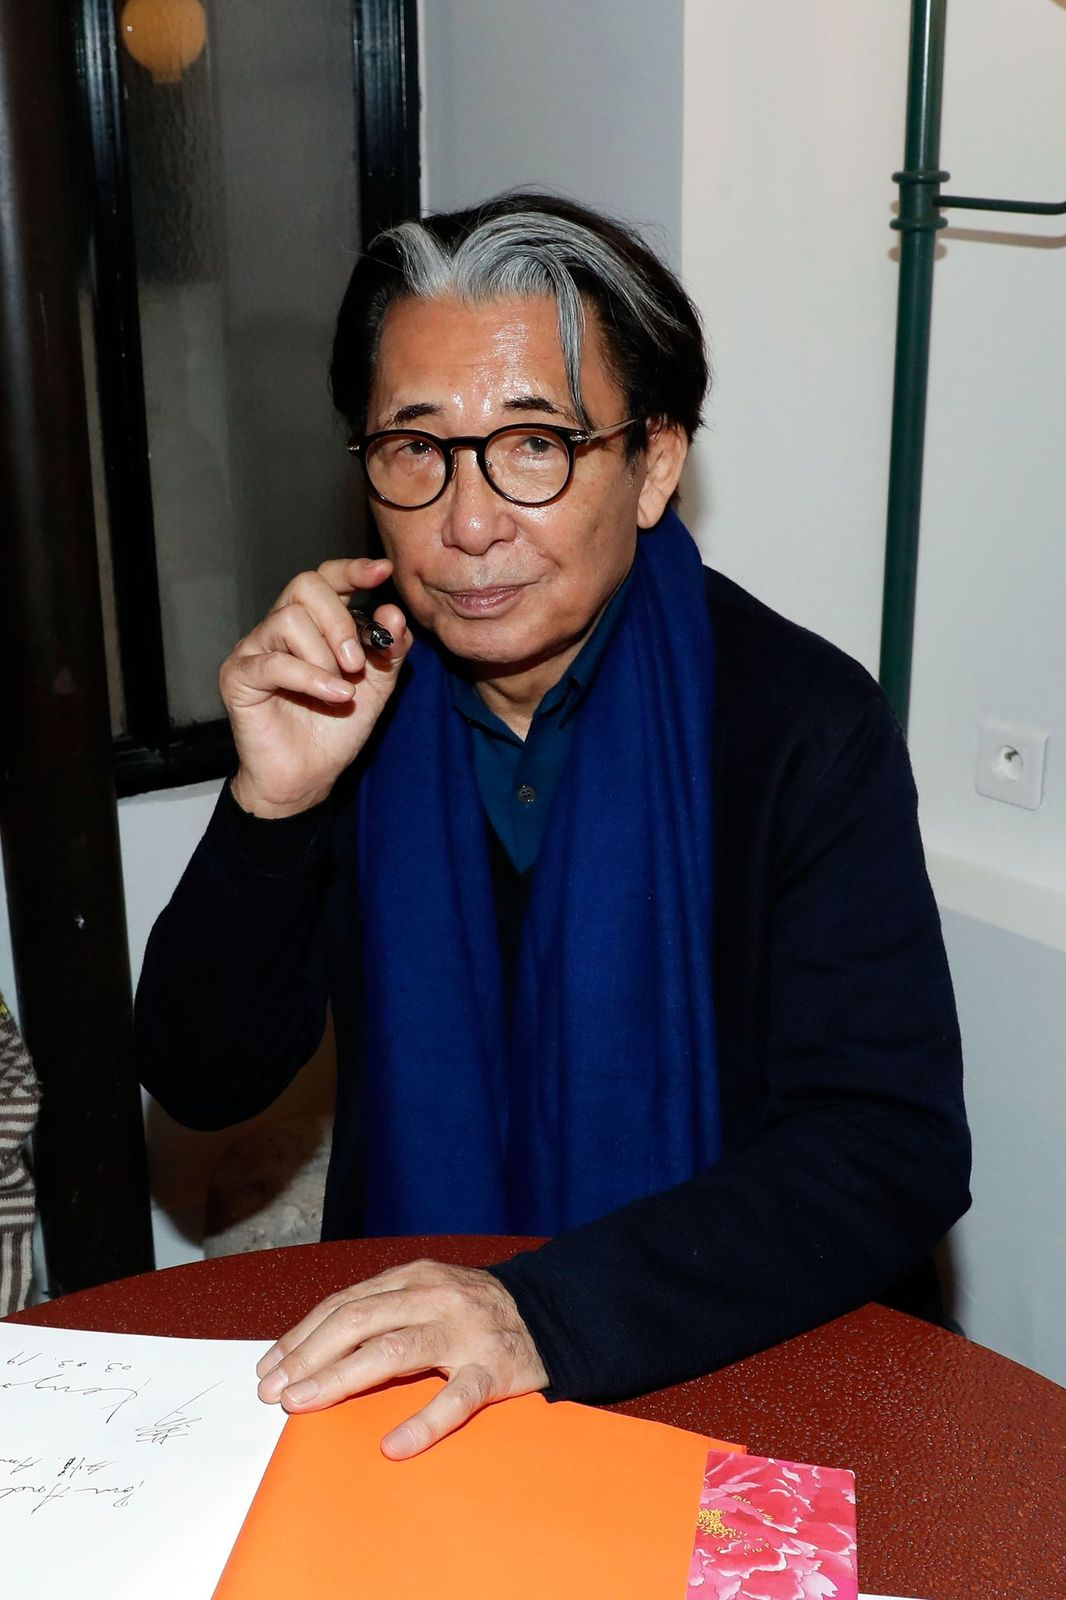 Kenzo Takada at a book signing as part of the Paris Fashion Week Womenswear Fall/Winter 2019/2020 on March 02, 2019, in Paris, France | Photo:Bertrand Rindoff Petroff/Getty Images